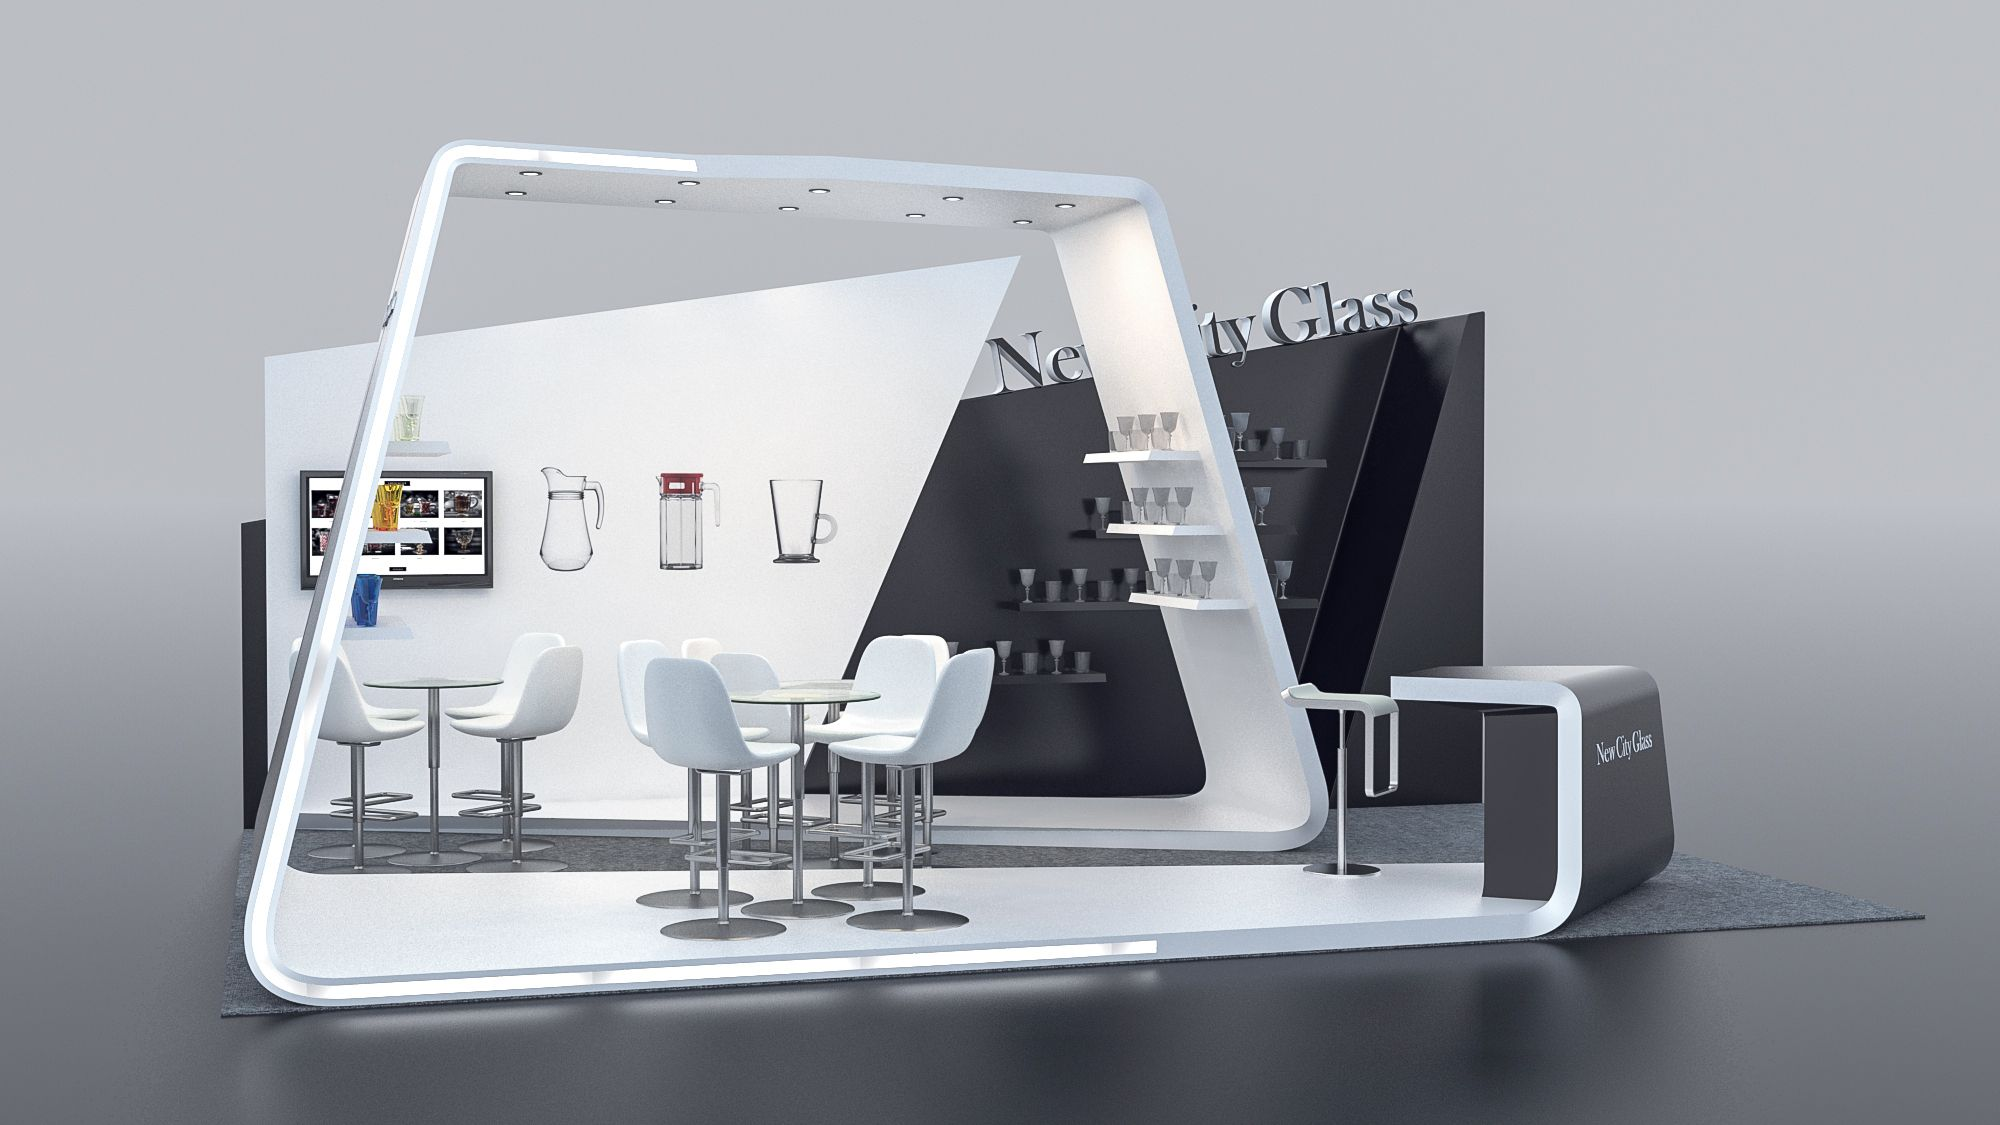 Expo Stand Egitto : Pin by lenna han on exhibition exhibition booth design booth